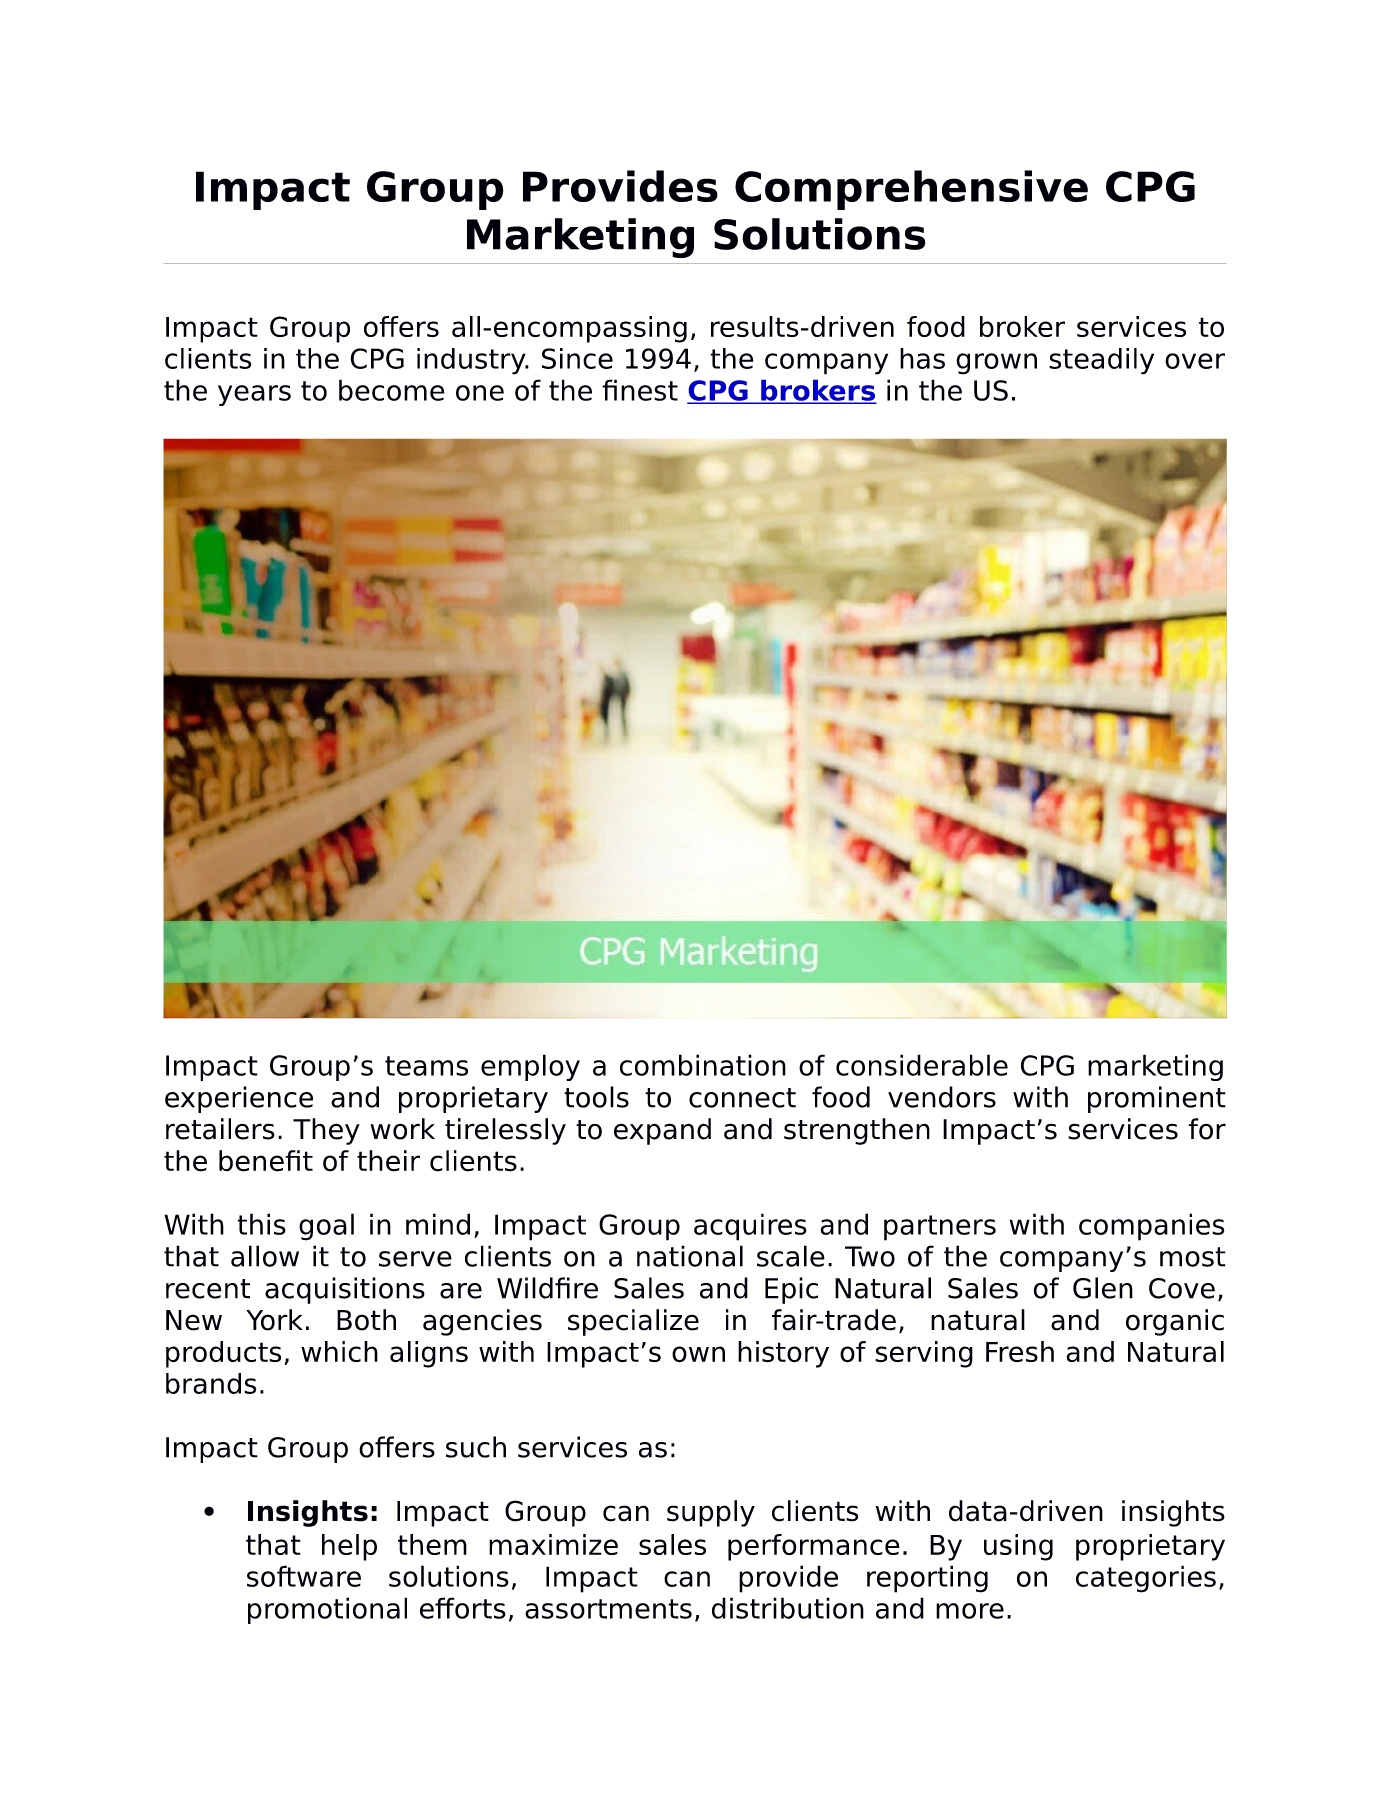 Impact Group Provides Comprehensive CPG Marketing Solutions